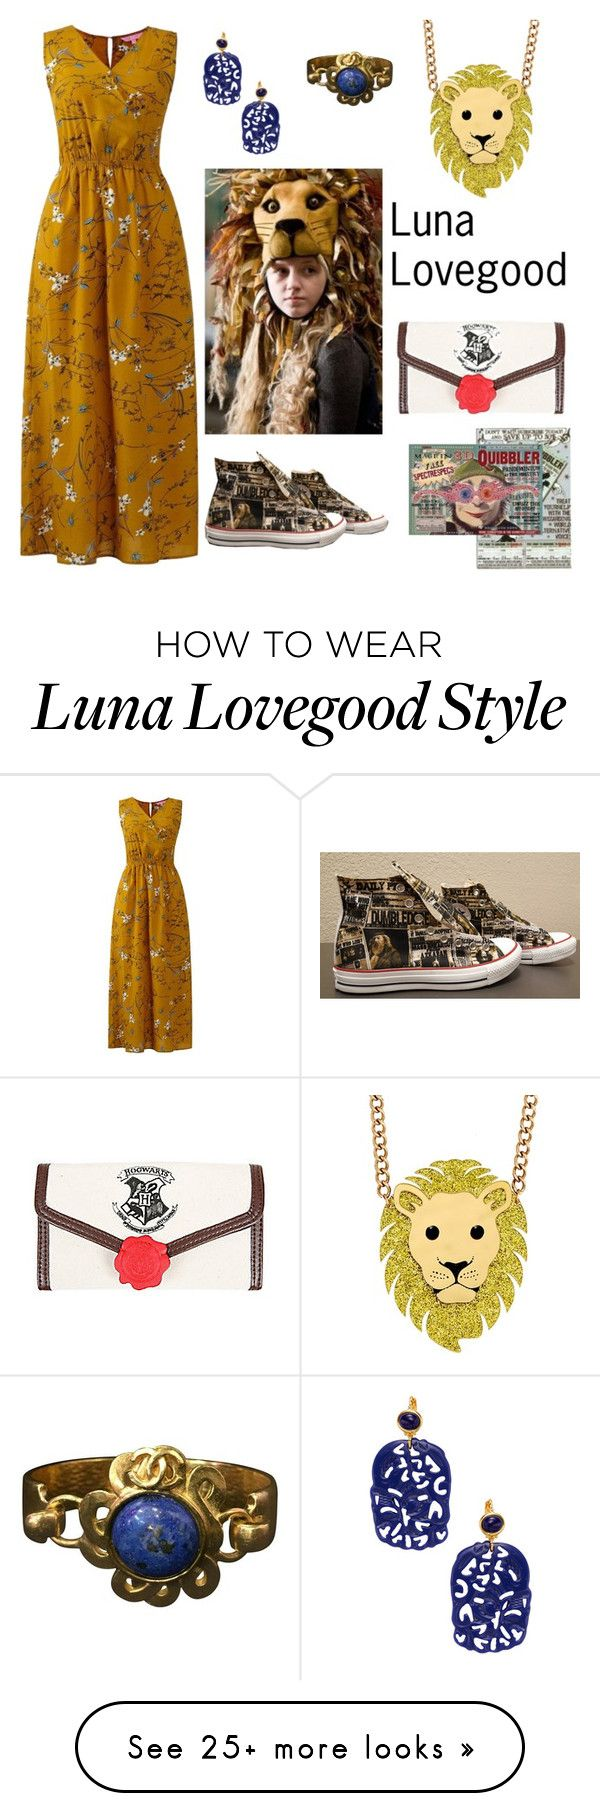 """""""Luna Lovegood"""" by fabulous-monsters on Polyvore featuring Converse, Warner Bros., Chanel, Kenneth Jay Lane, harrypotter and lunalovegood"""